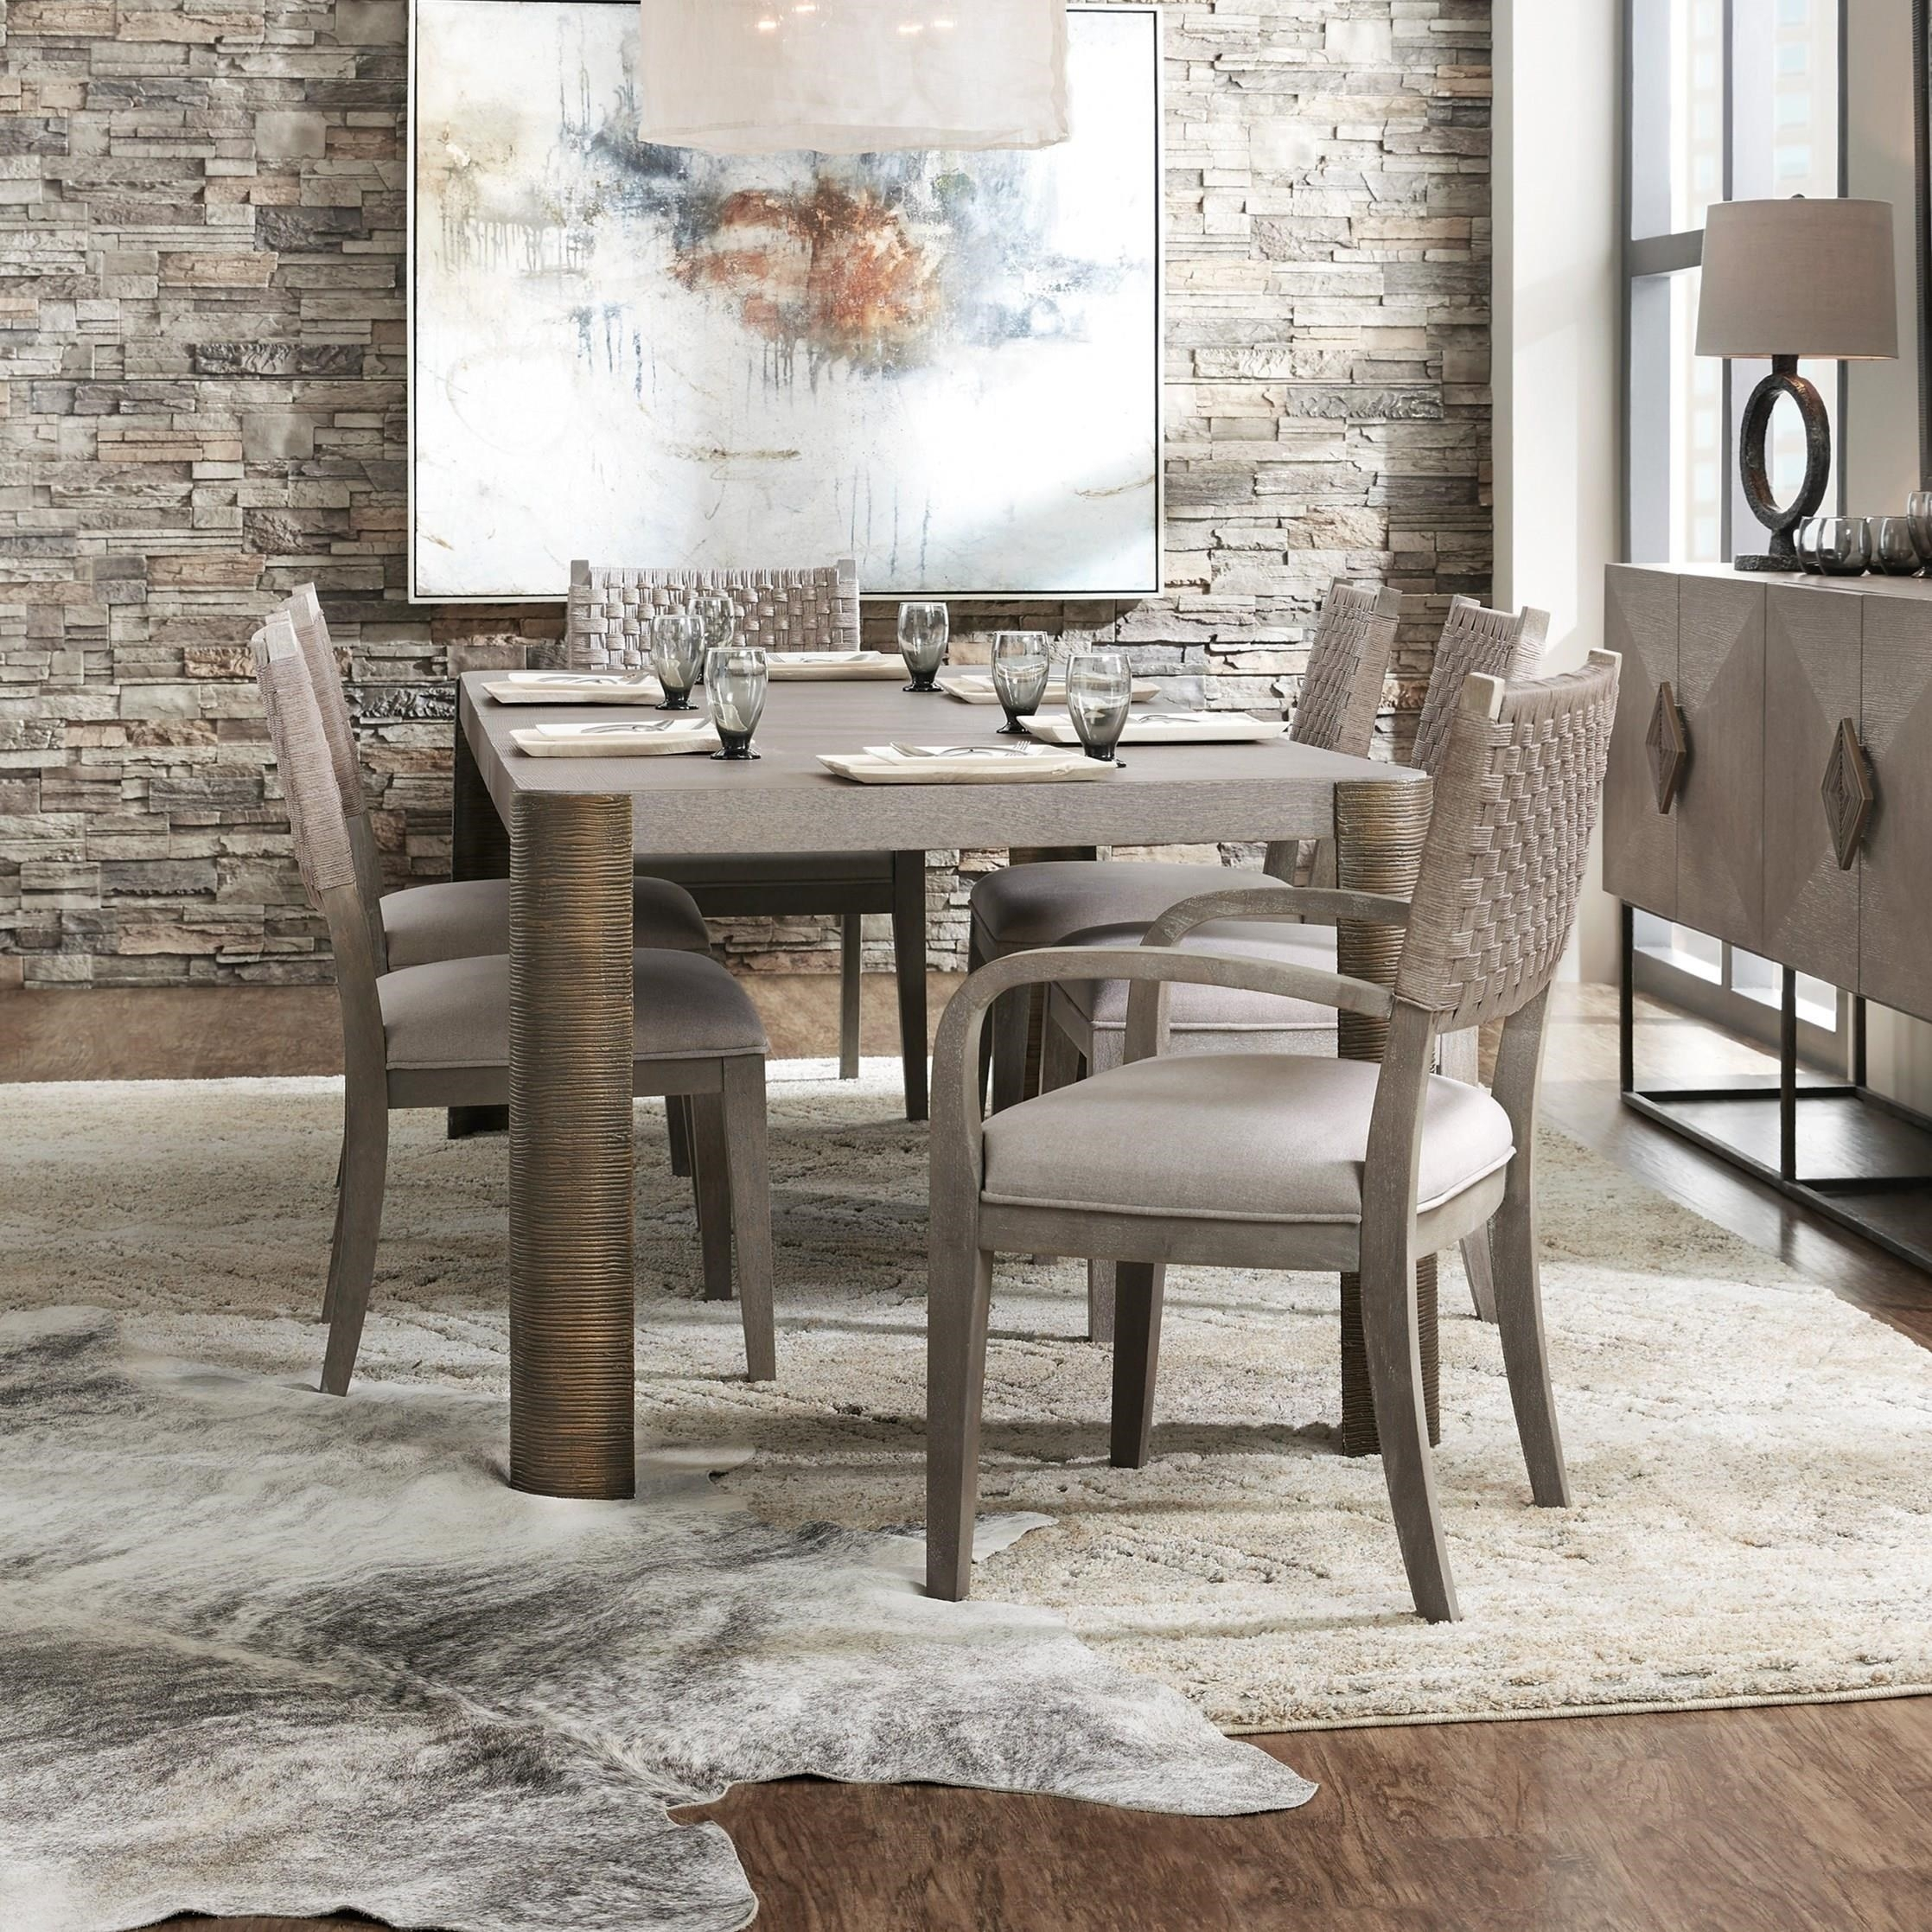 Most Recent Carmel Oak Side Chairs Pertaining To Hooker Furniture Miramar – Carmel 7 Piece Dining Table And Chair Set (#17 of 20)